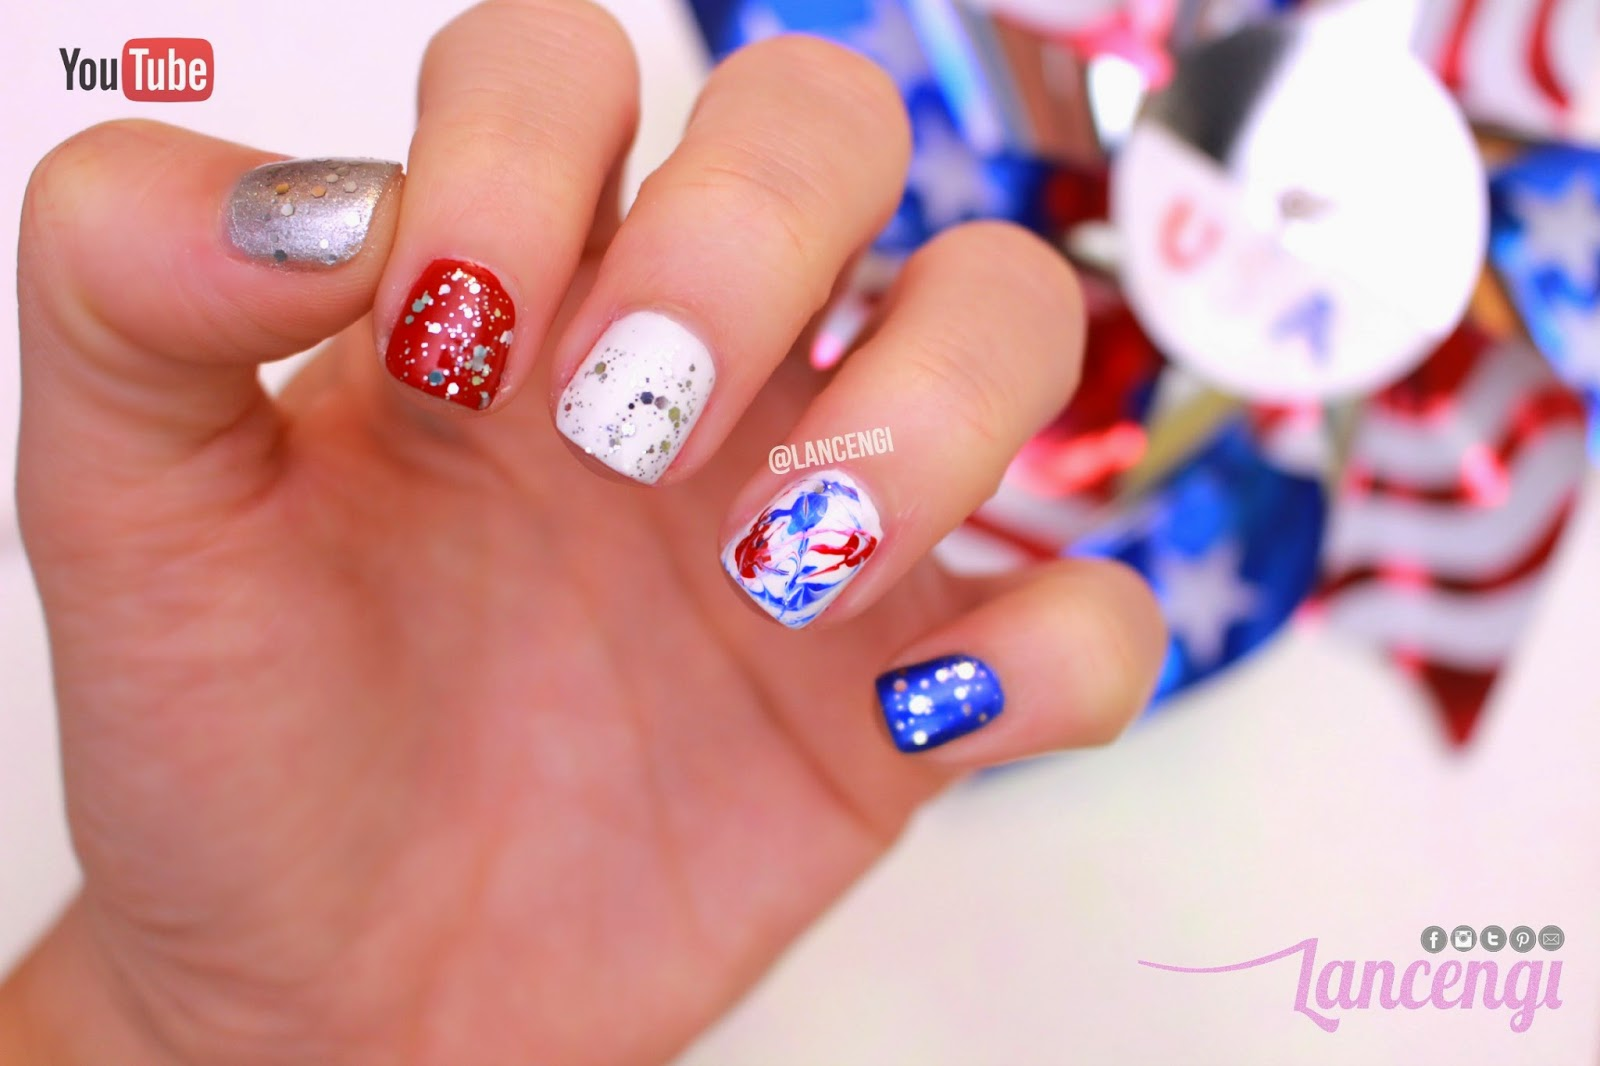 LancenGi: Easy Nail Art for Short Nails - Firework ...